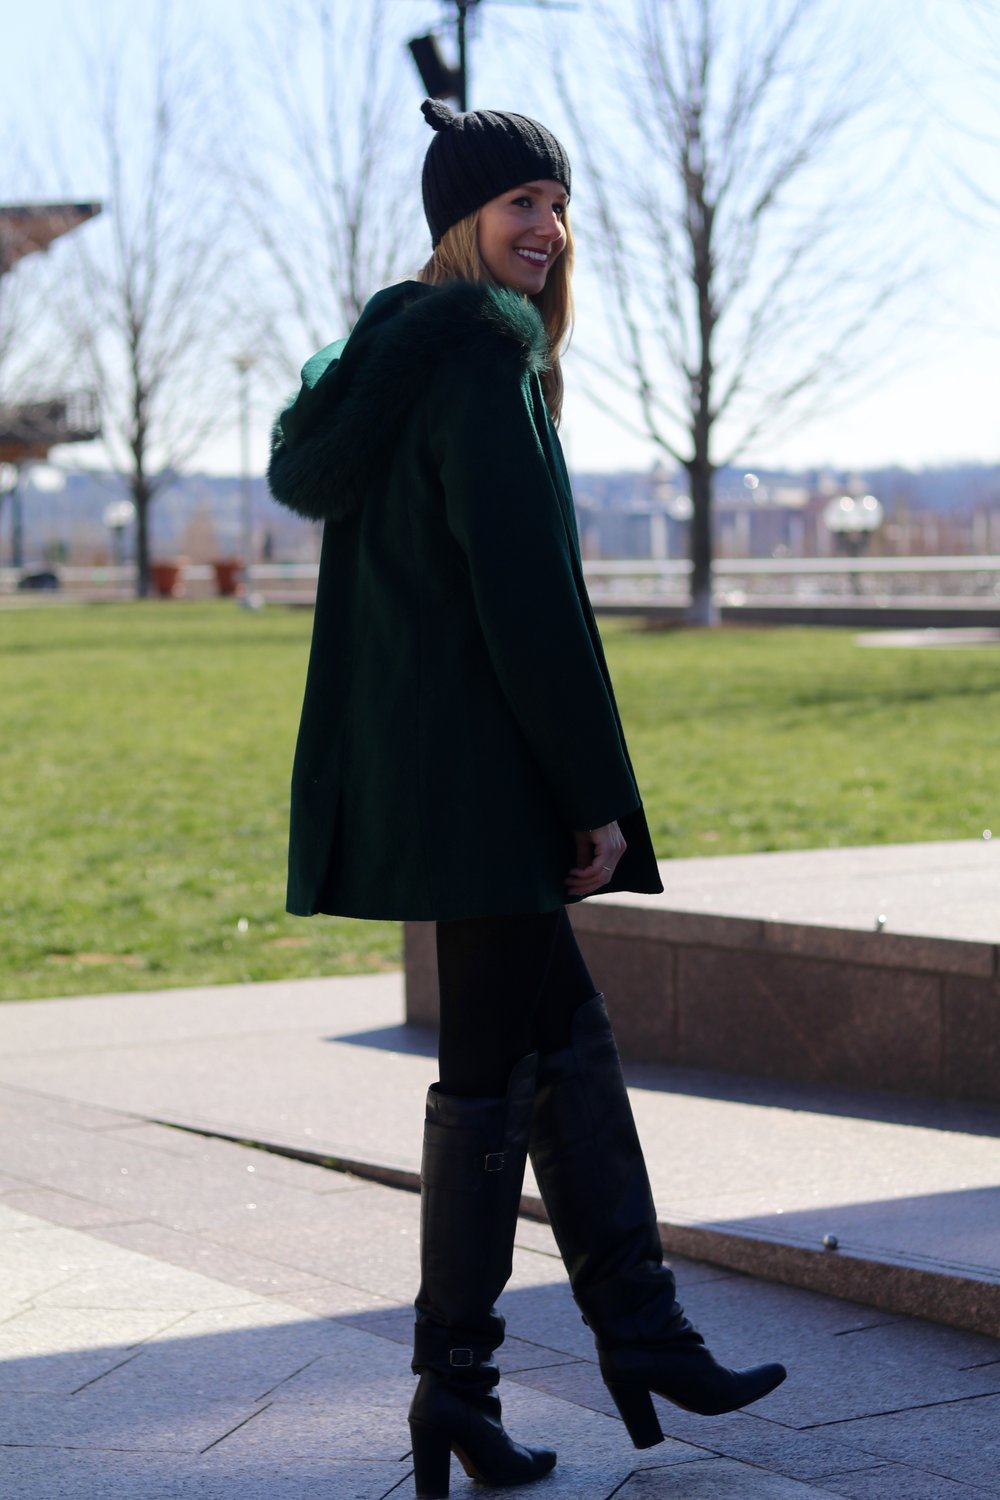 gilt edge | winter fashion